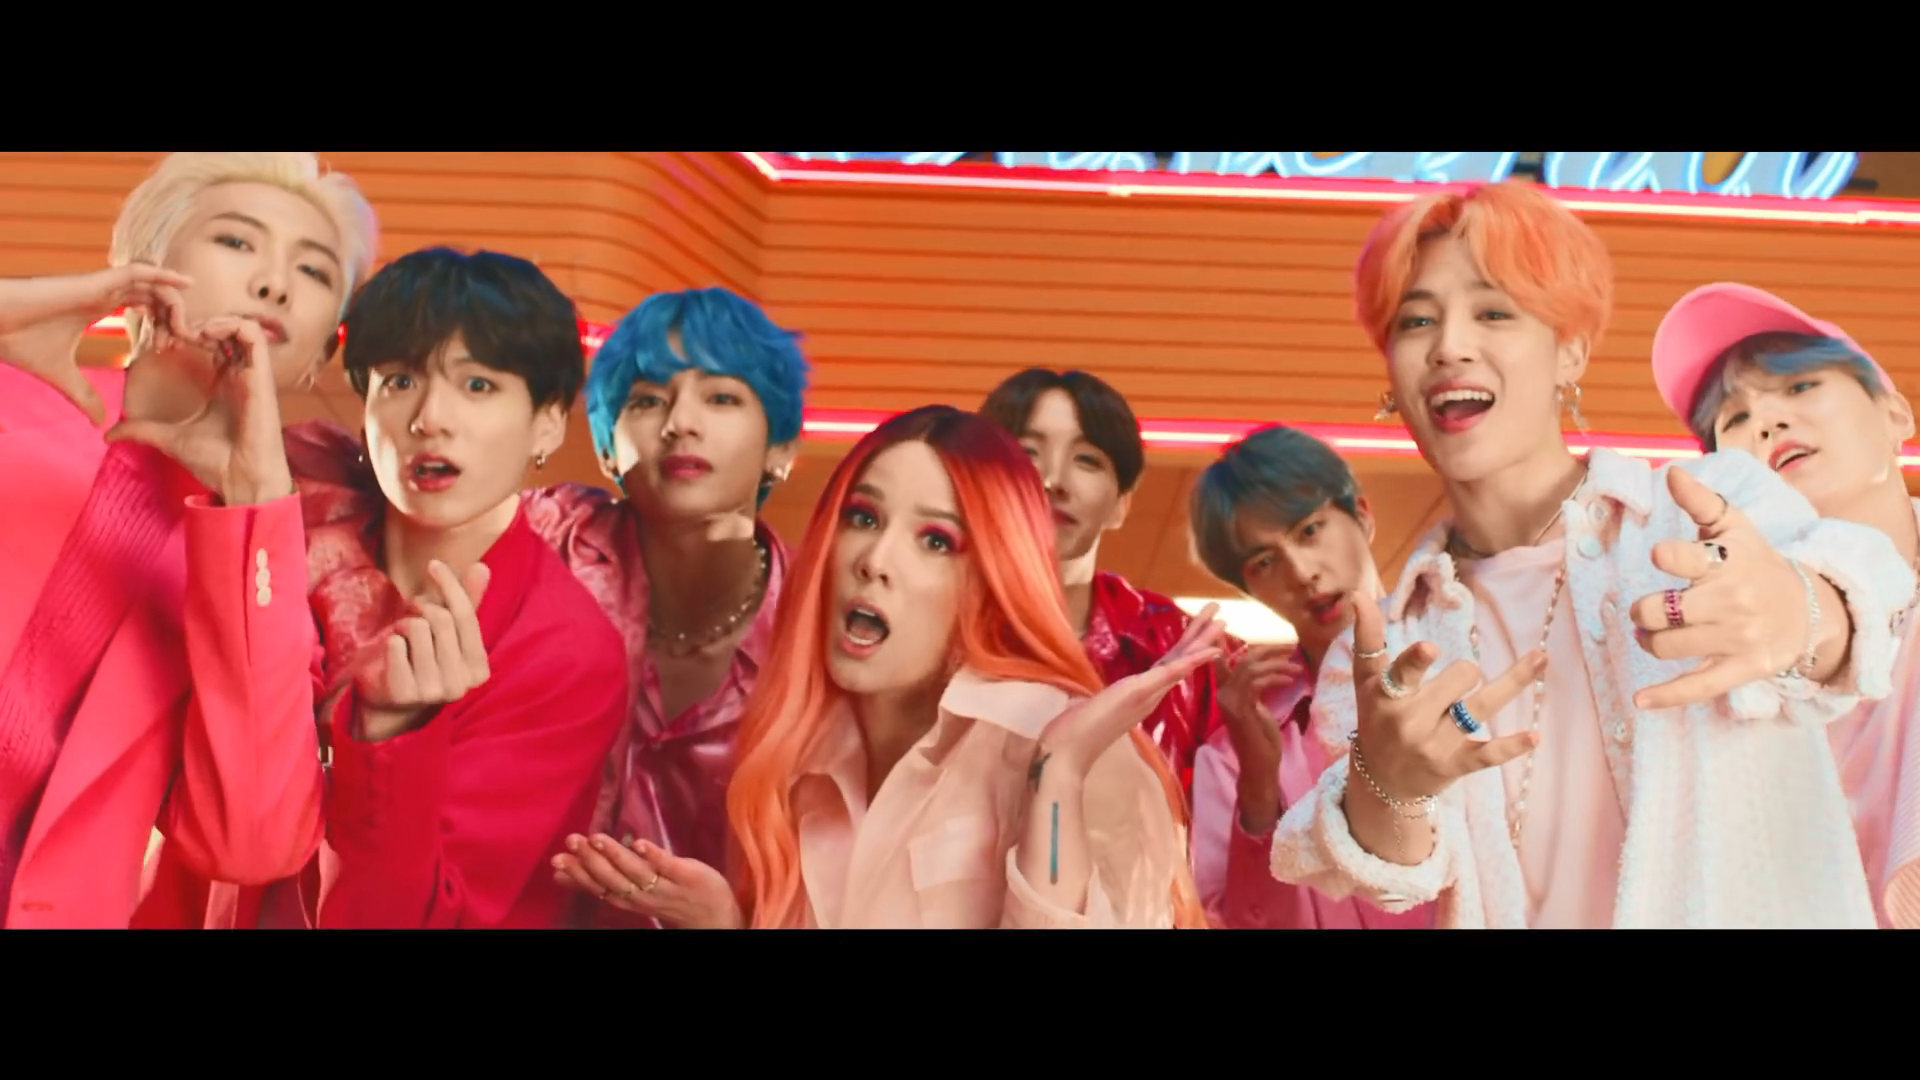 BTS Boy With Luv who's who